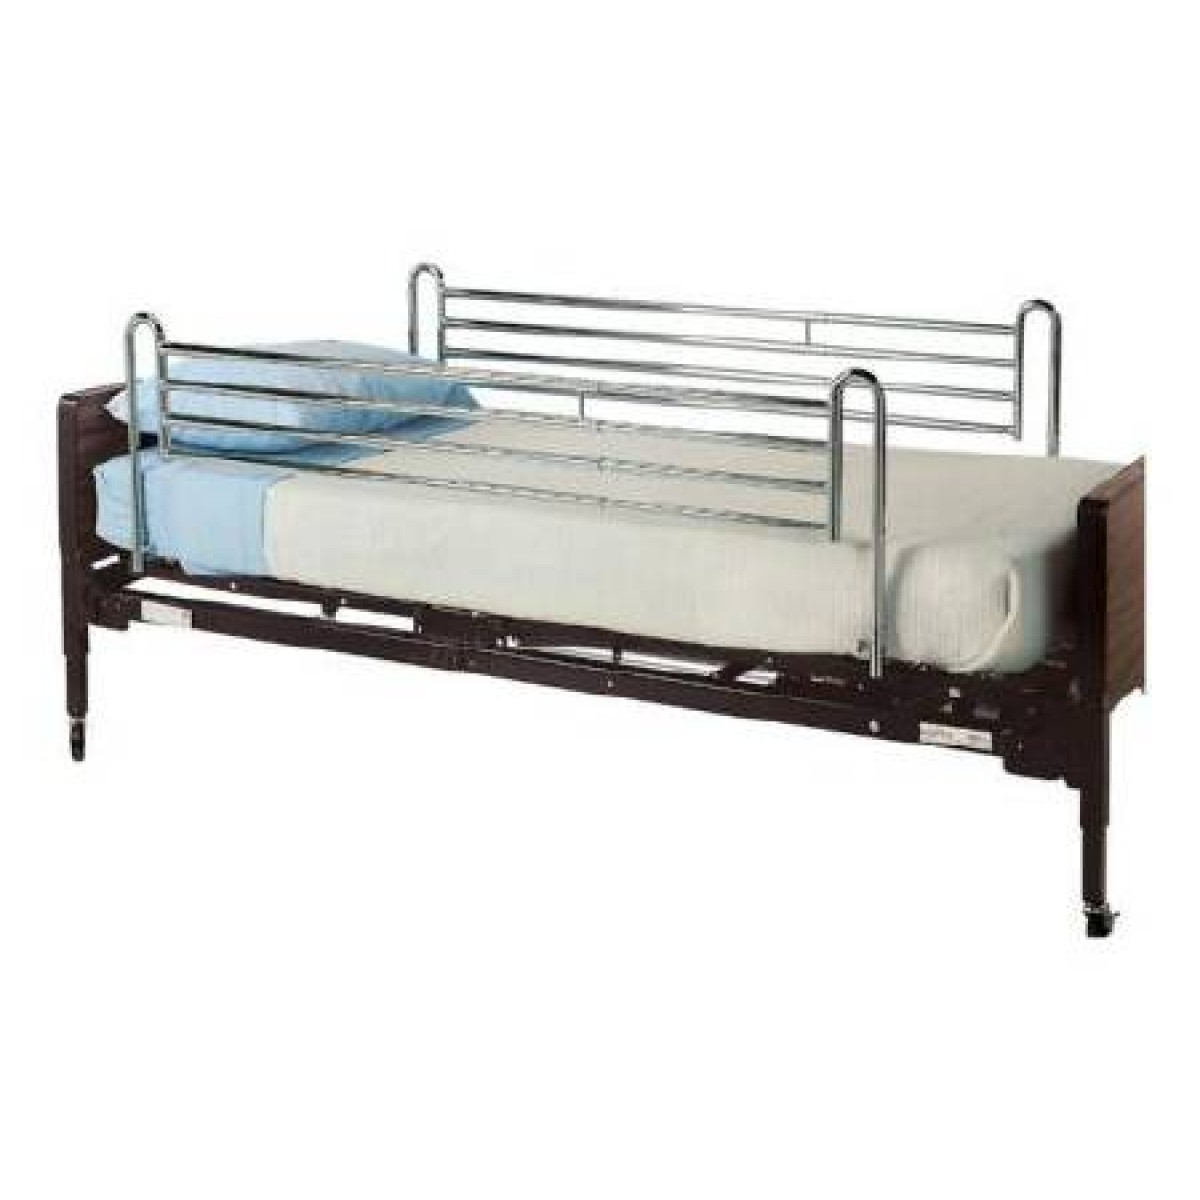 Medical Bed Rail Covers